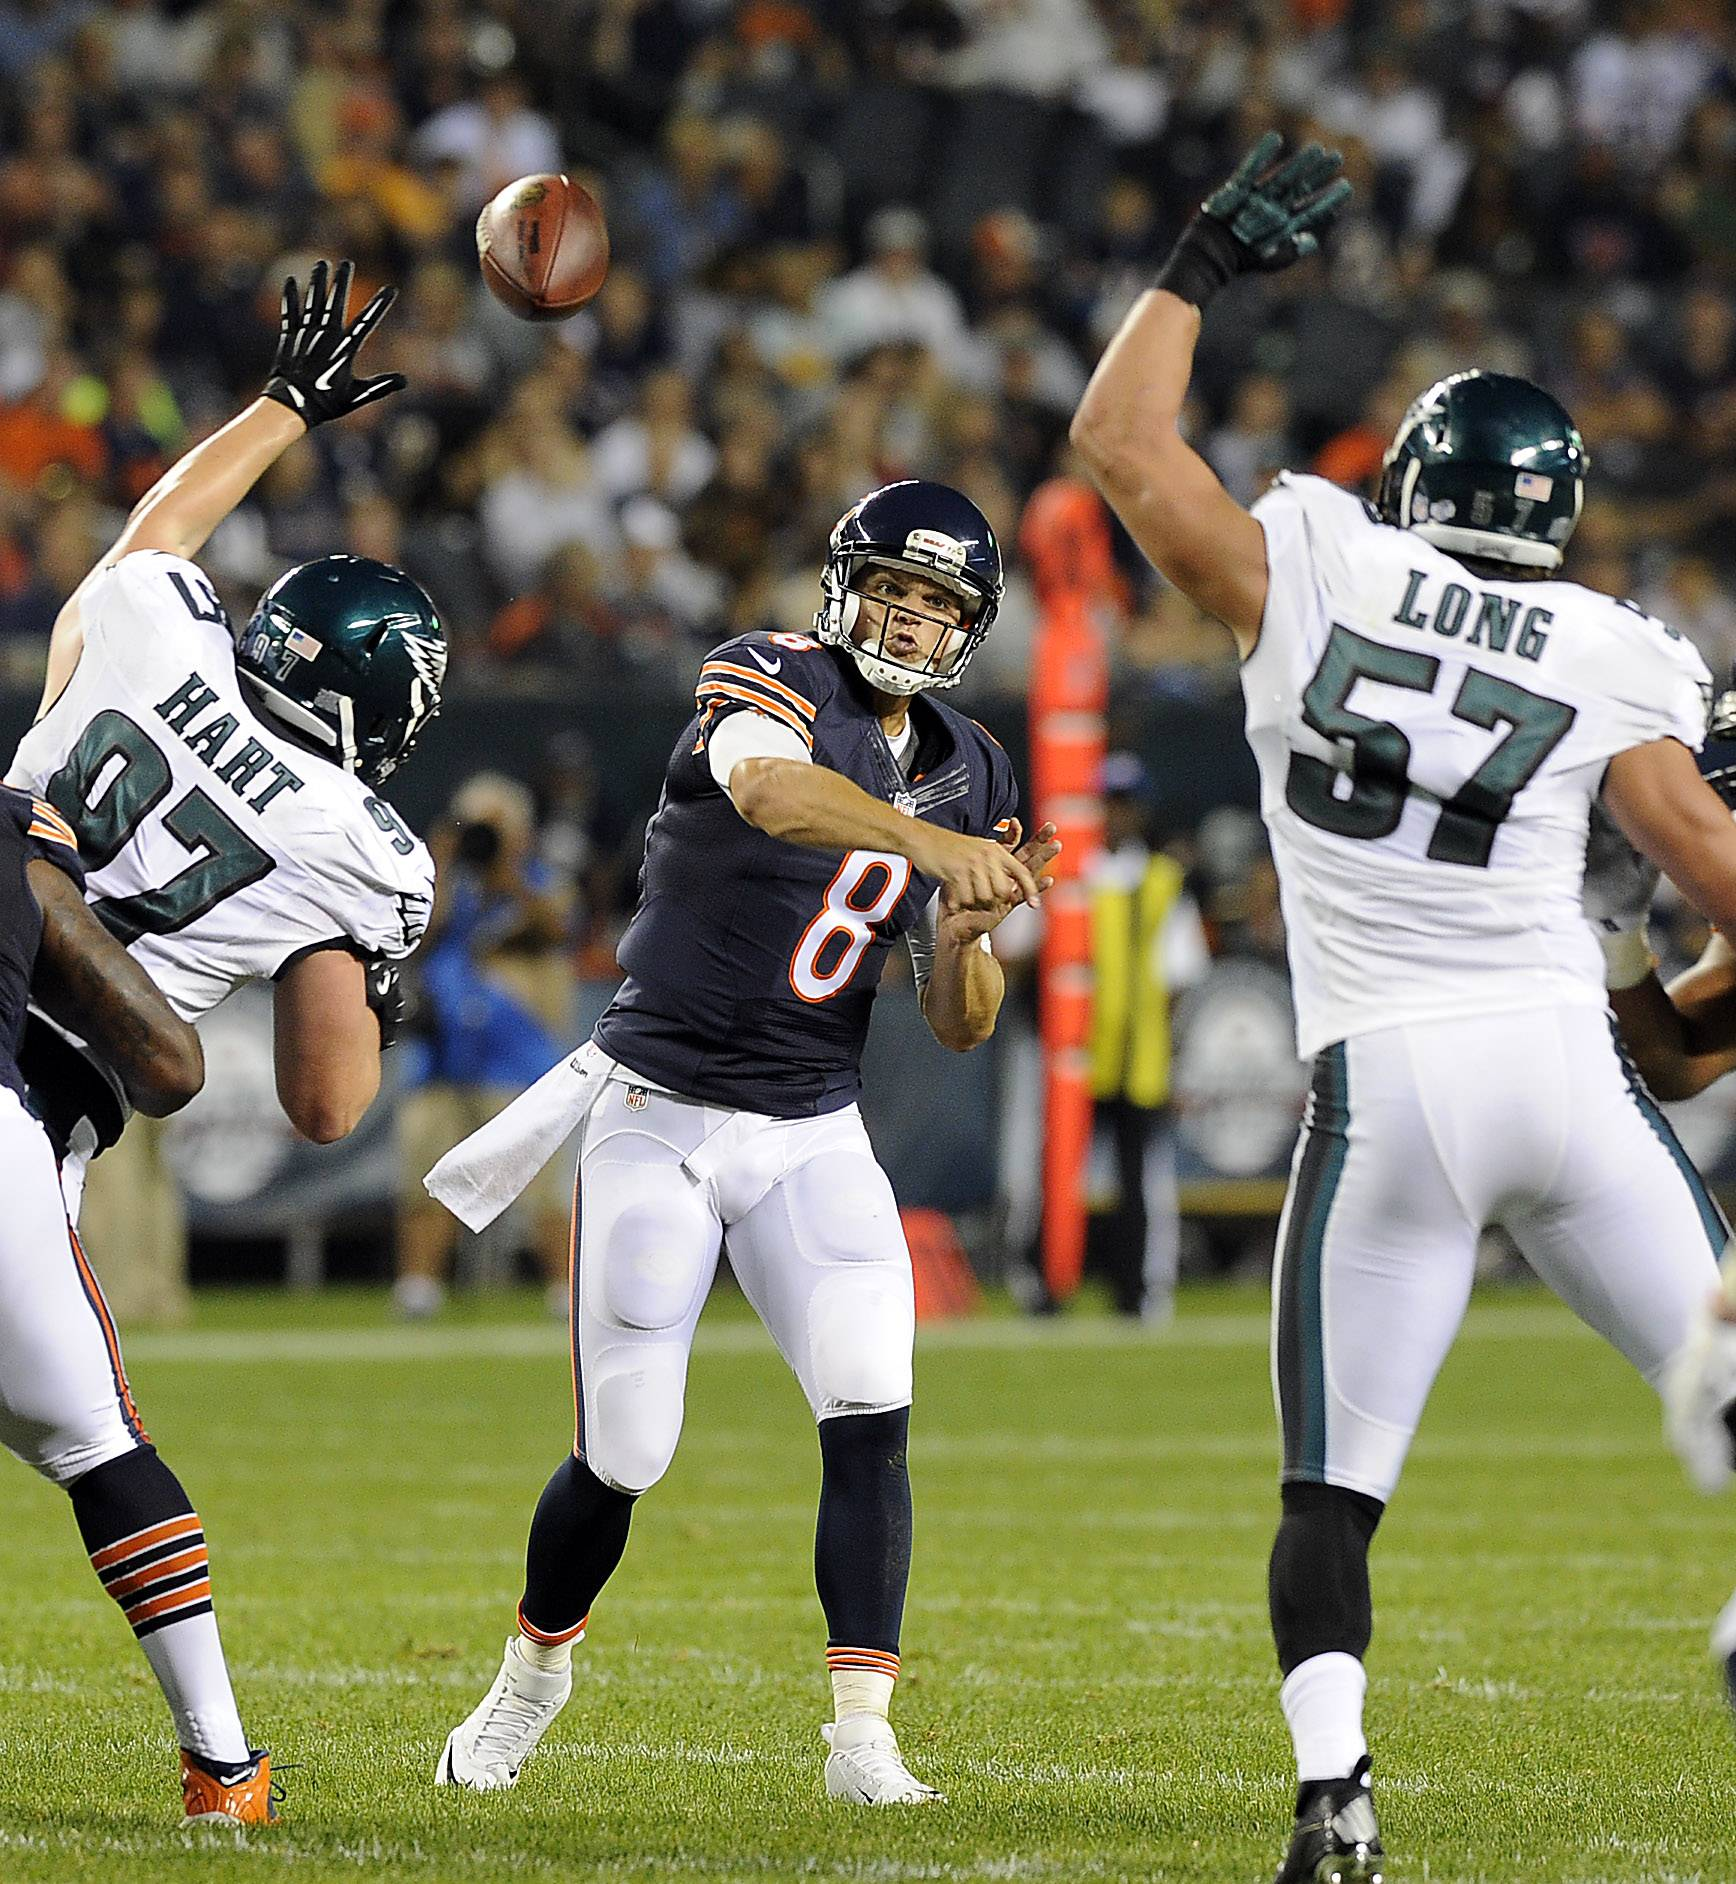 Chicago Bears quarterback Jimmy Clausen's touchdown pass to Micheal Spurlock puts the Bears ahead  against Philadelphia on this play.